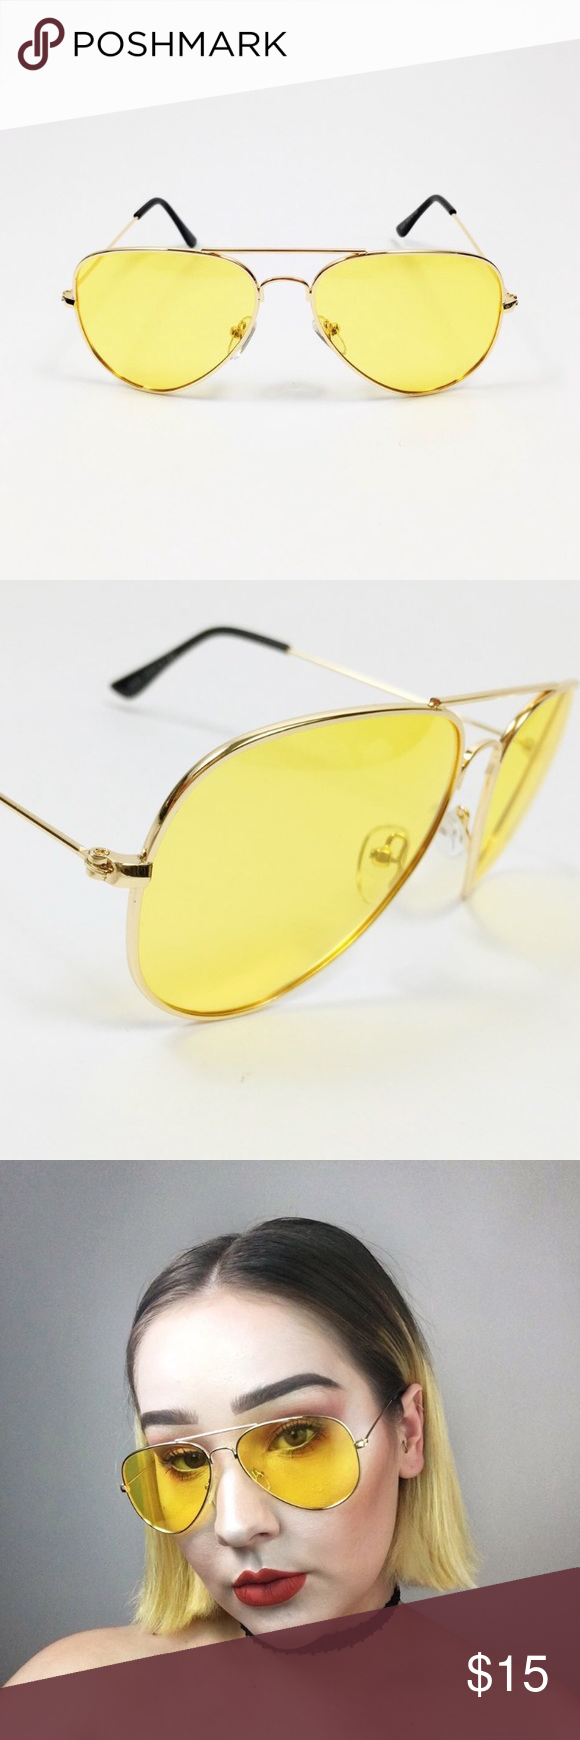 3013b5b7146 70s vintage style yellow gold aviators  TAGGED ACNE STUDIOS FOR ATTENTION   Dupe for Acne Spitfire aviators (as seen on Isabella Peschardt). Only tried  on.